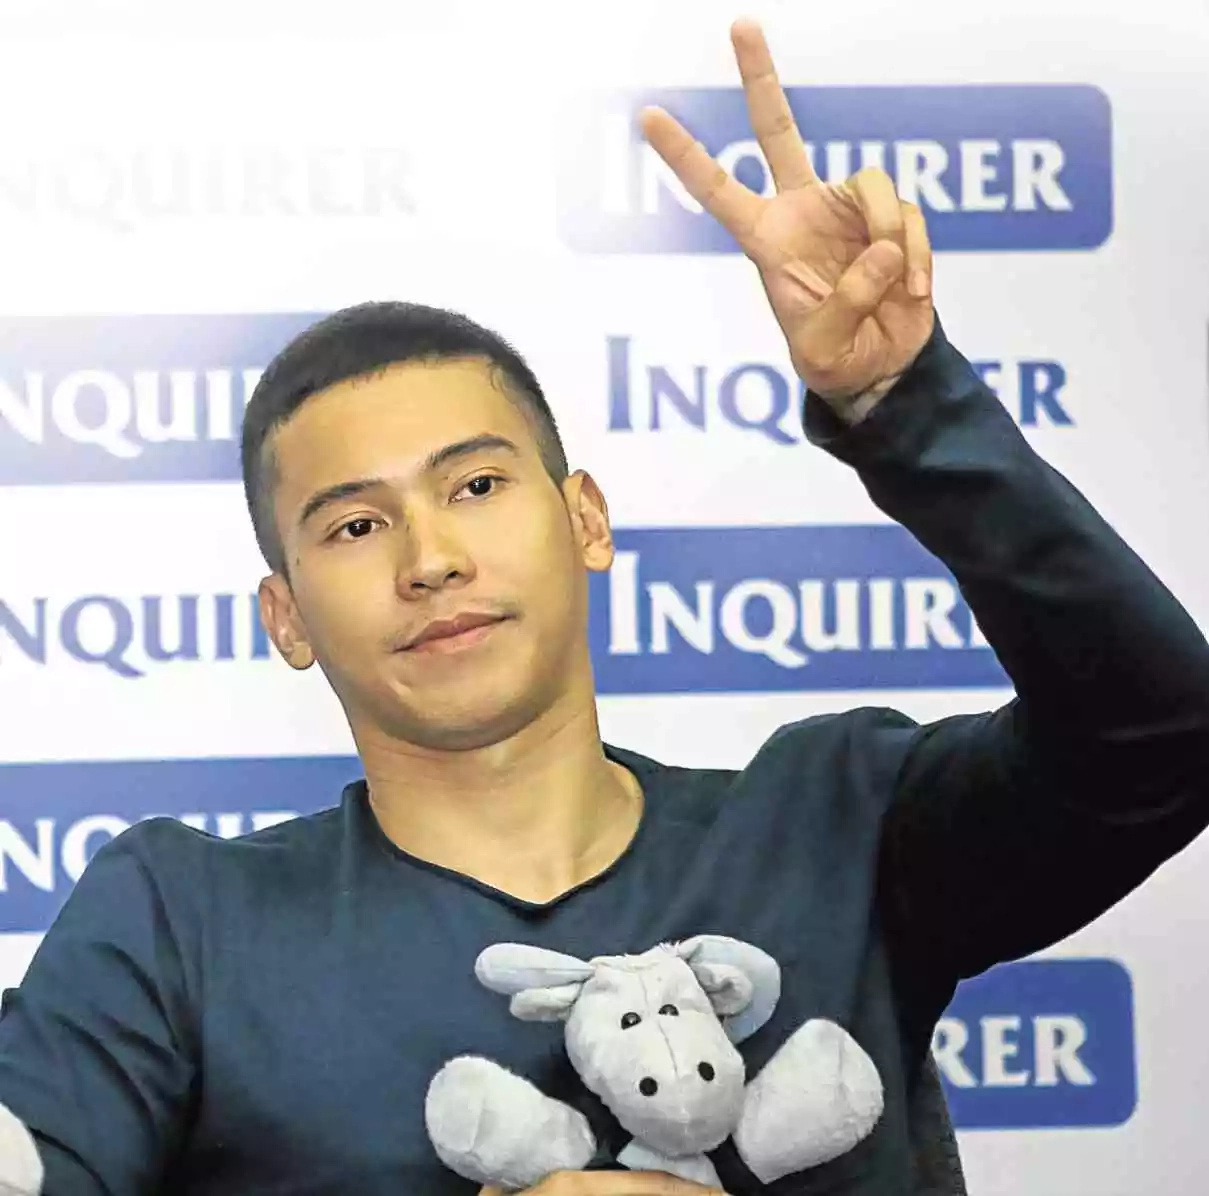 Enchong Dee airs frustration over long lines at immigration